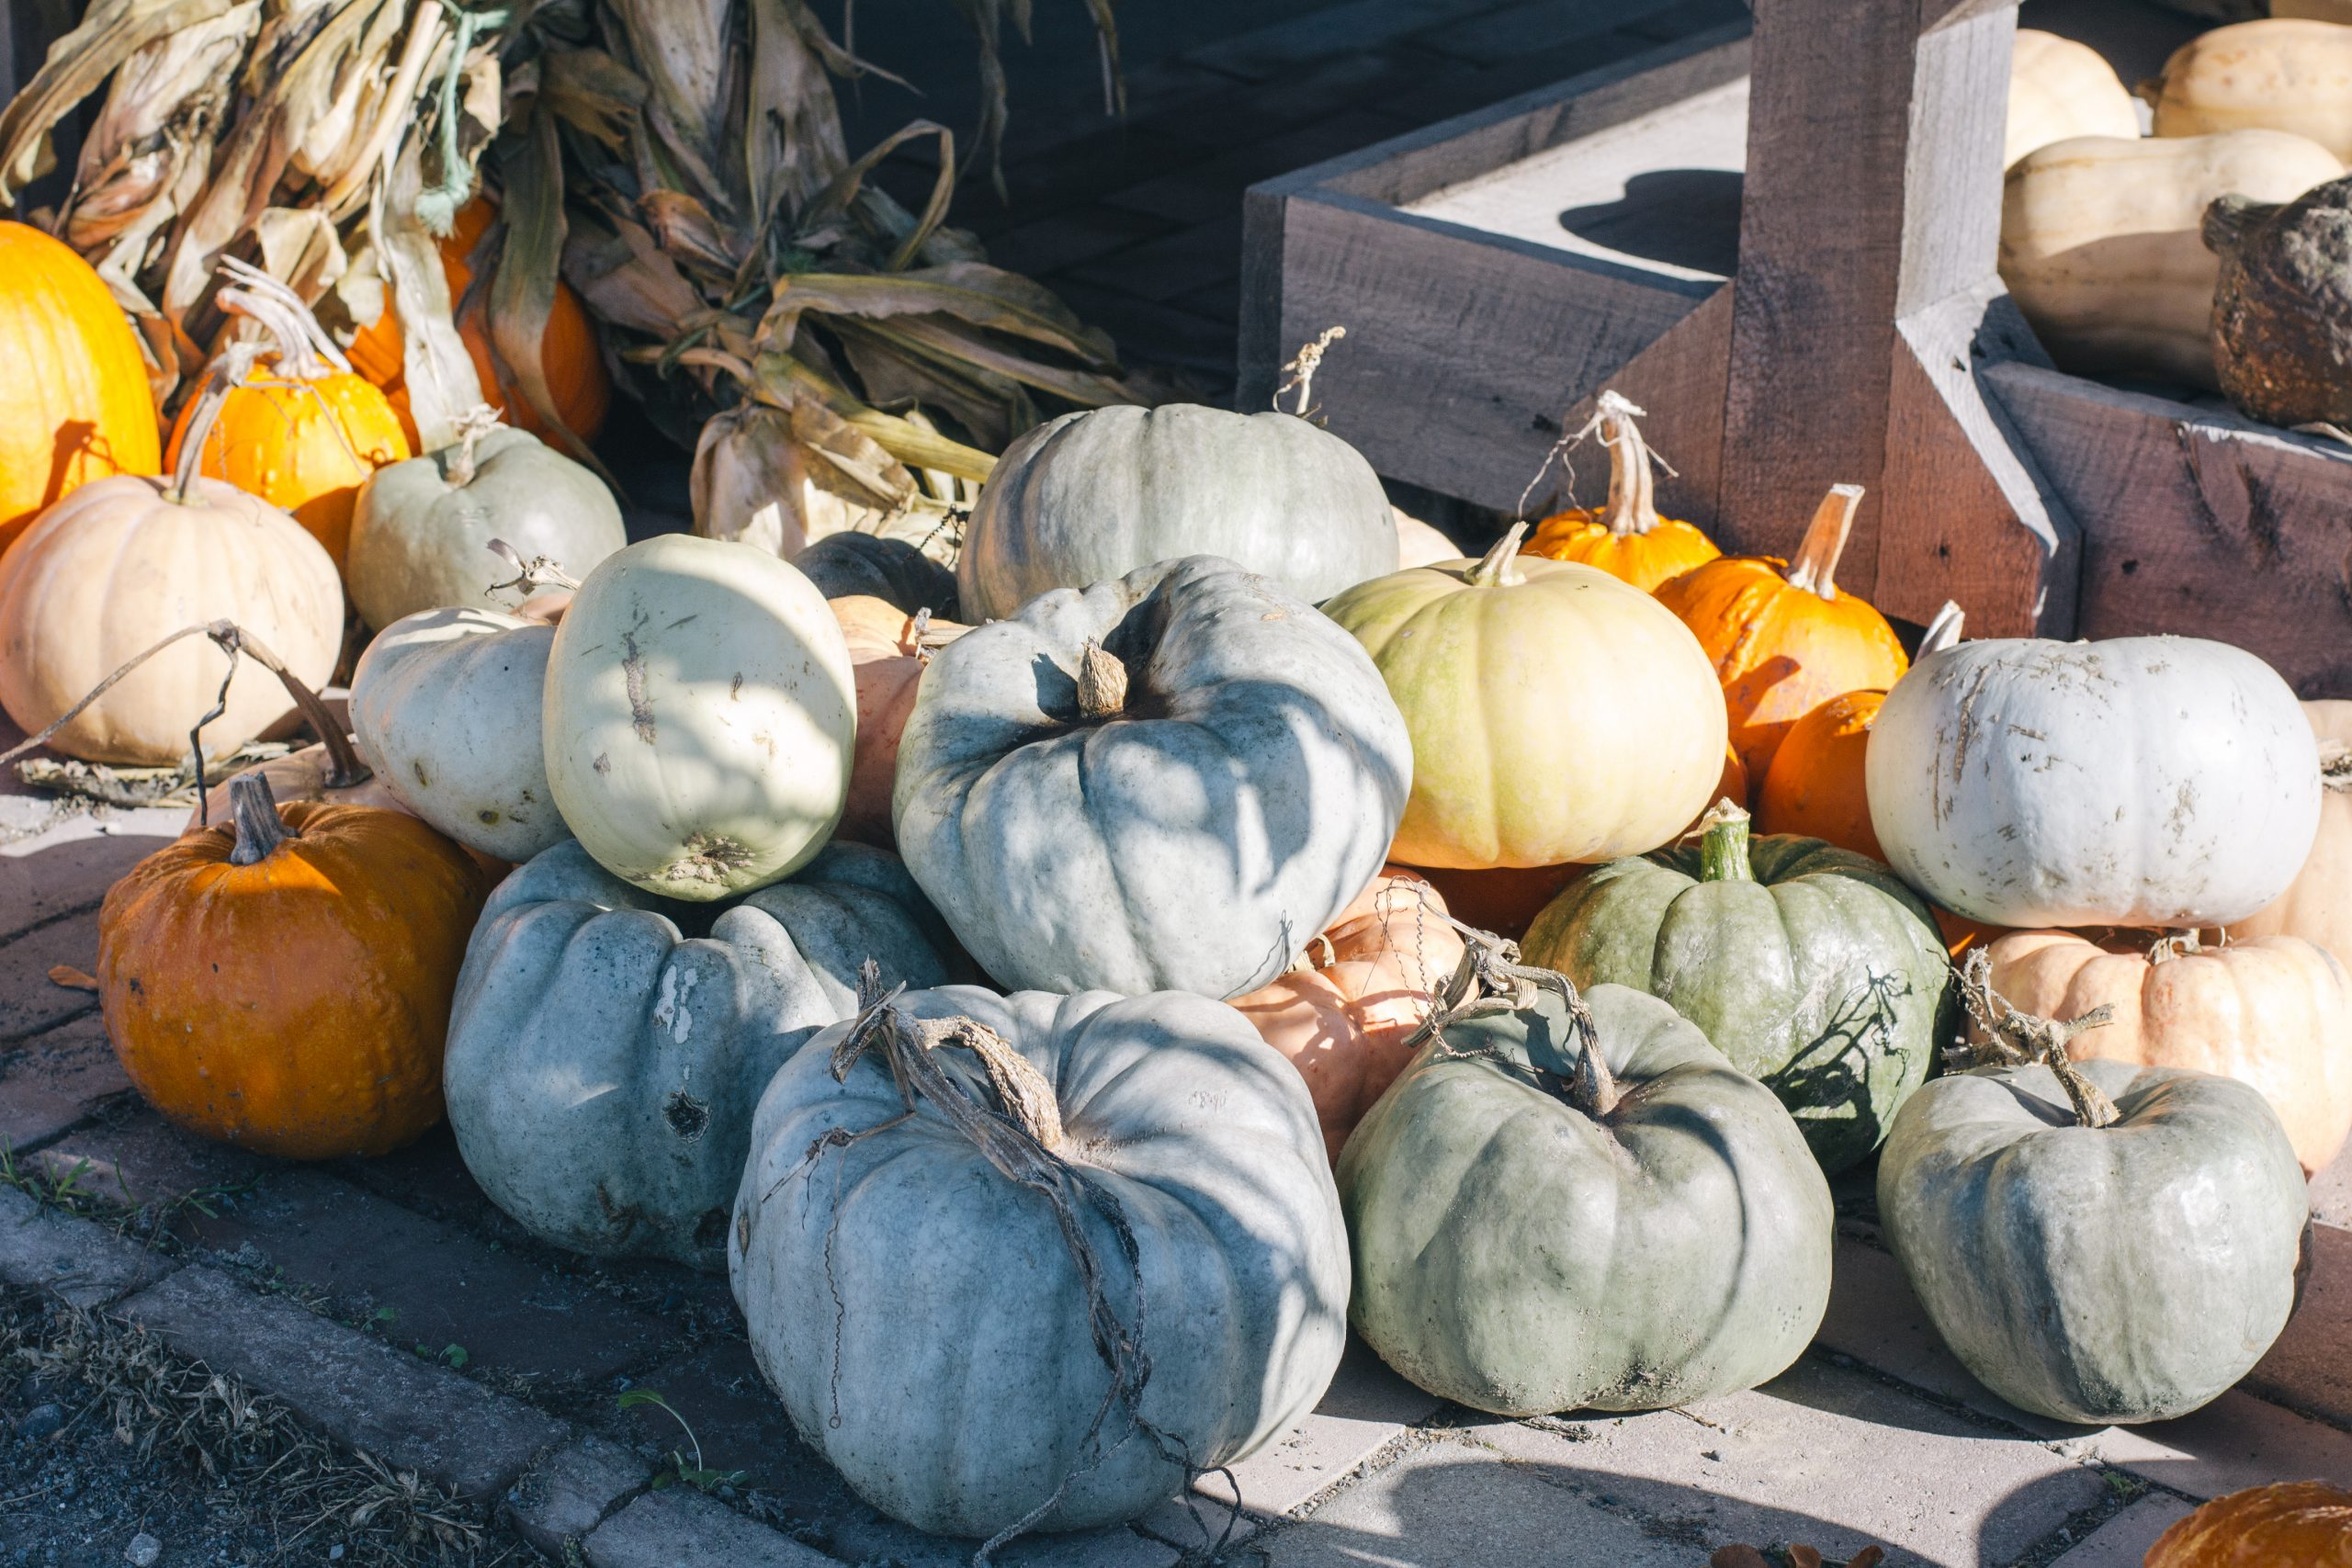 Piles of squash and gourds at Willow Creek Farms farm stand in Quinte West.